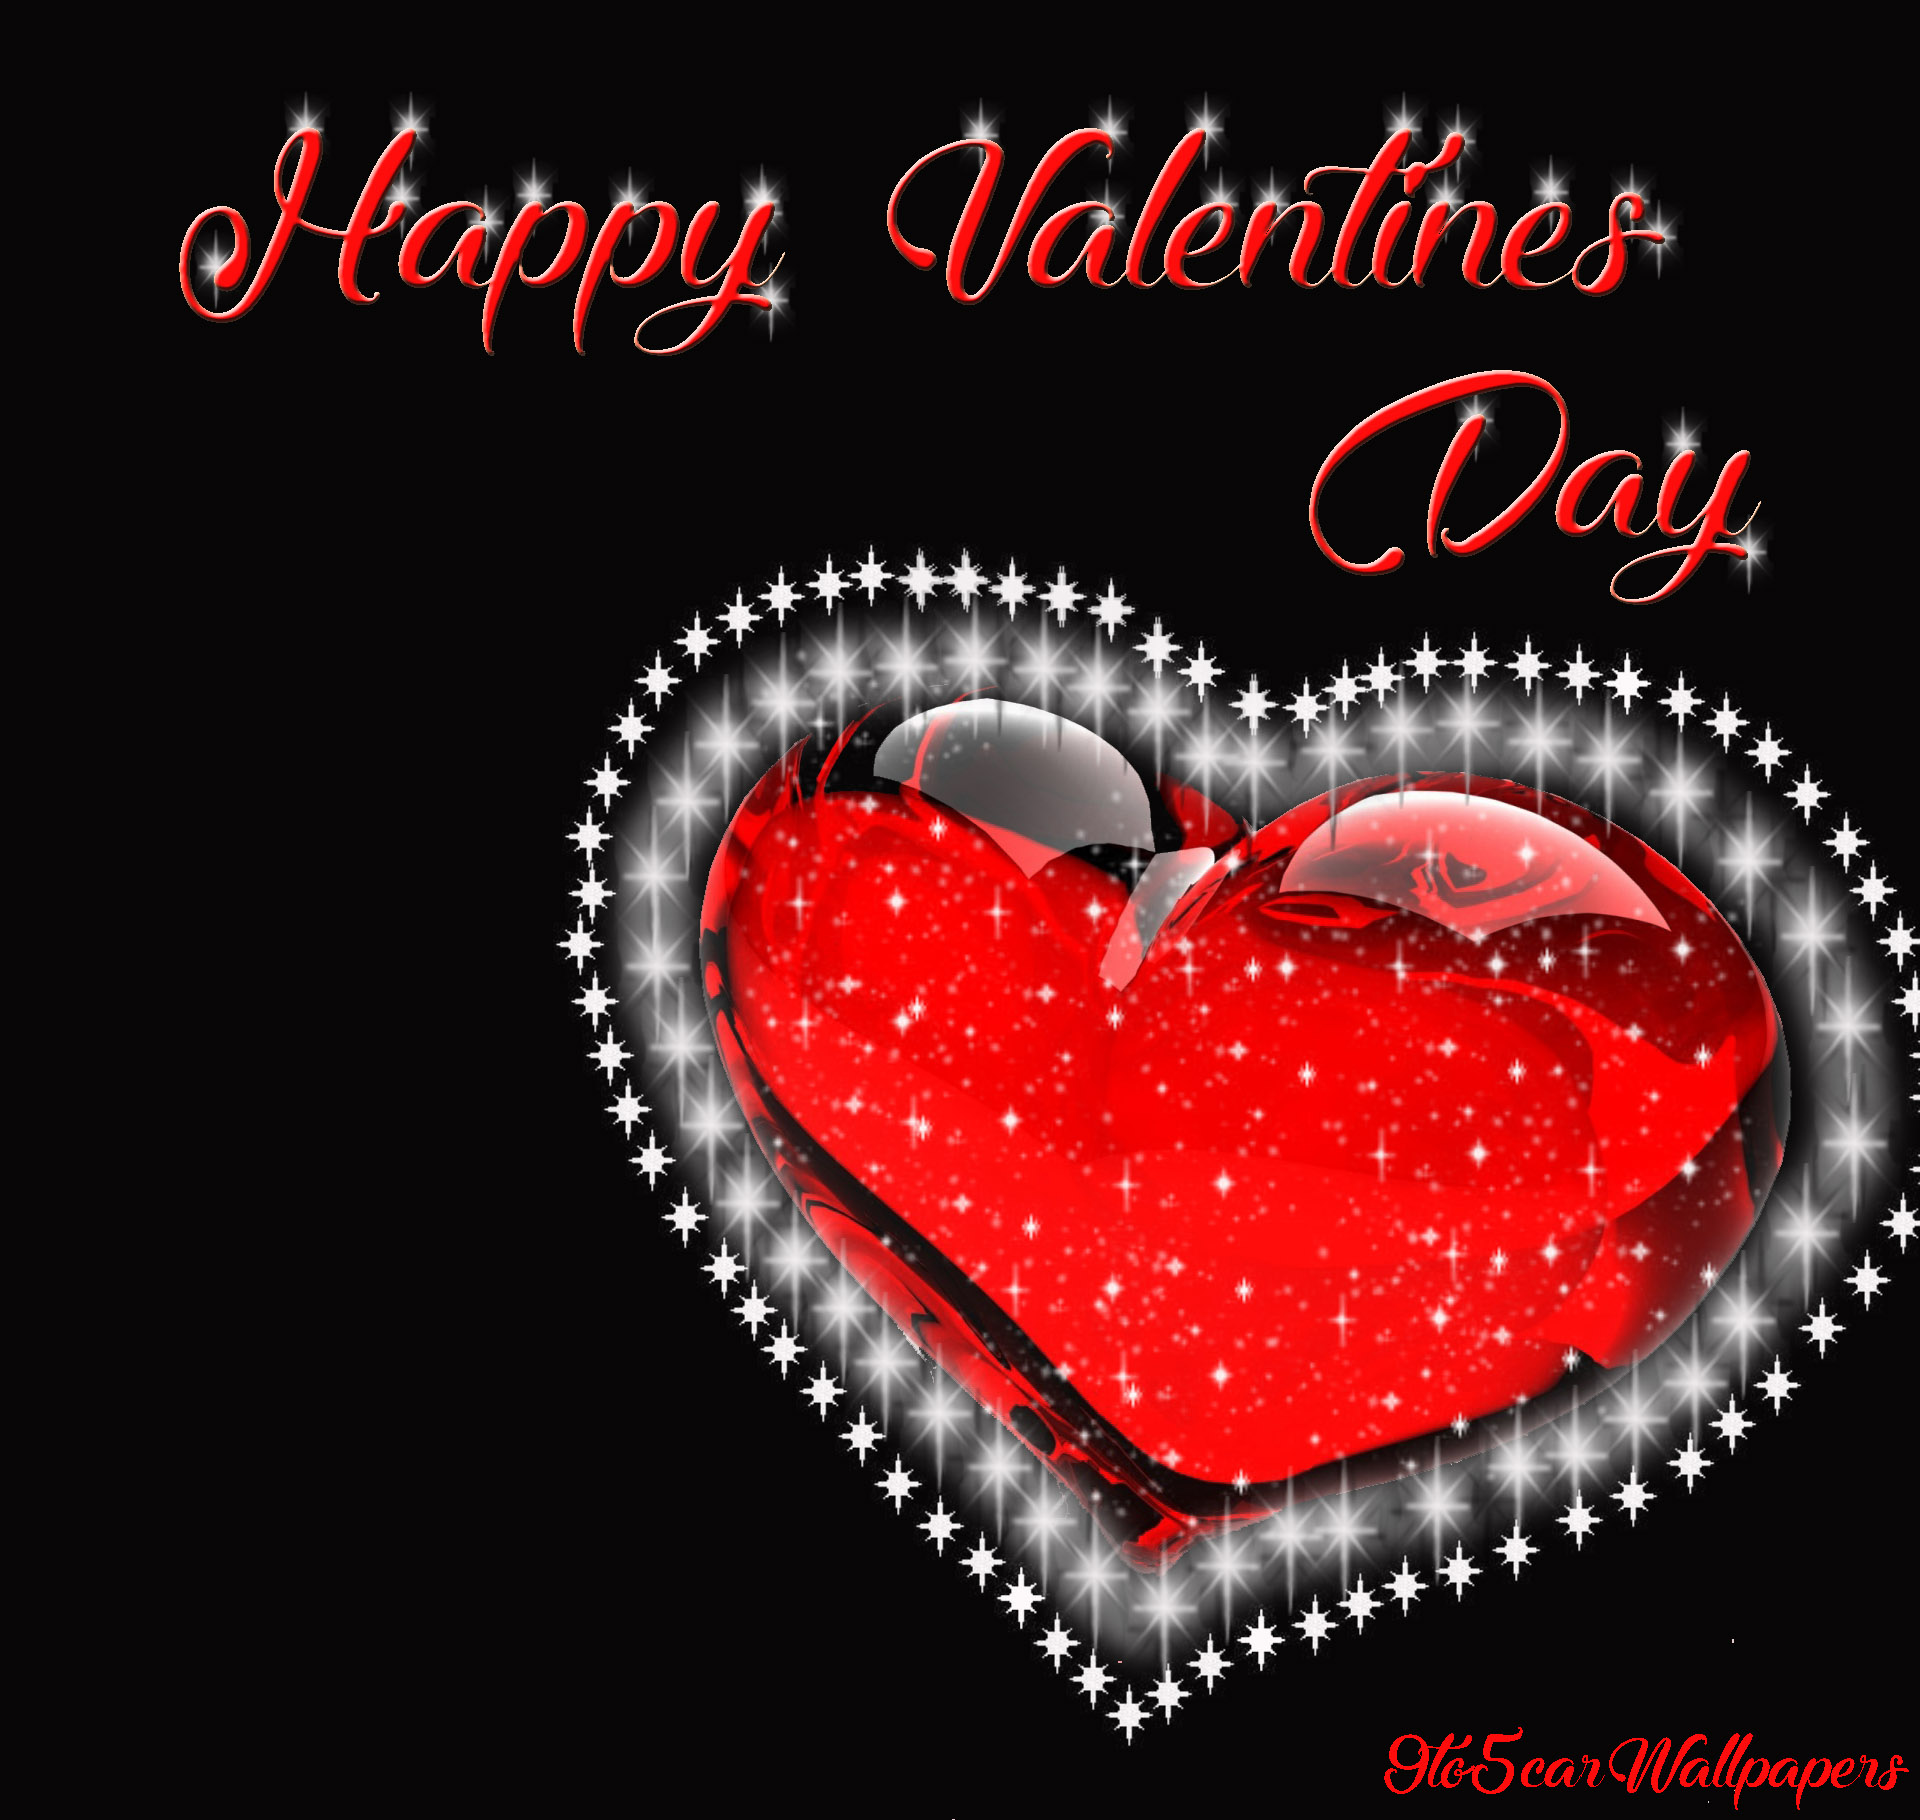 valentine-card-Images-wallpapers